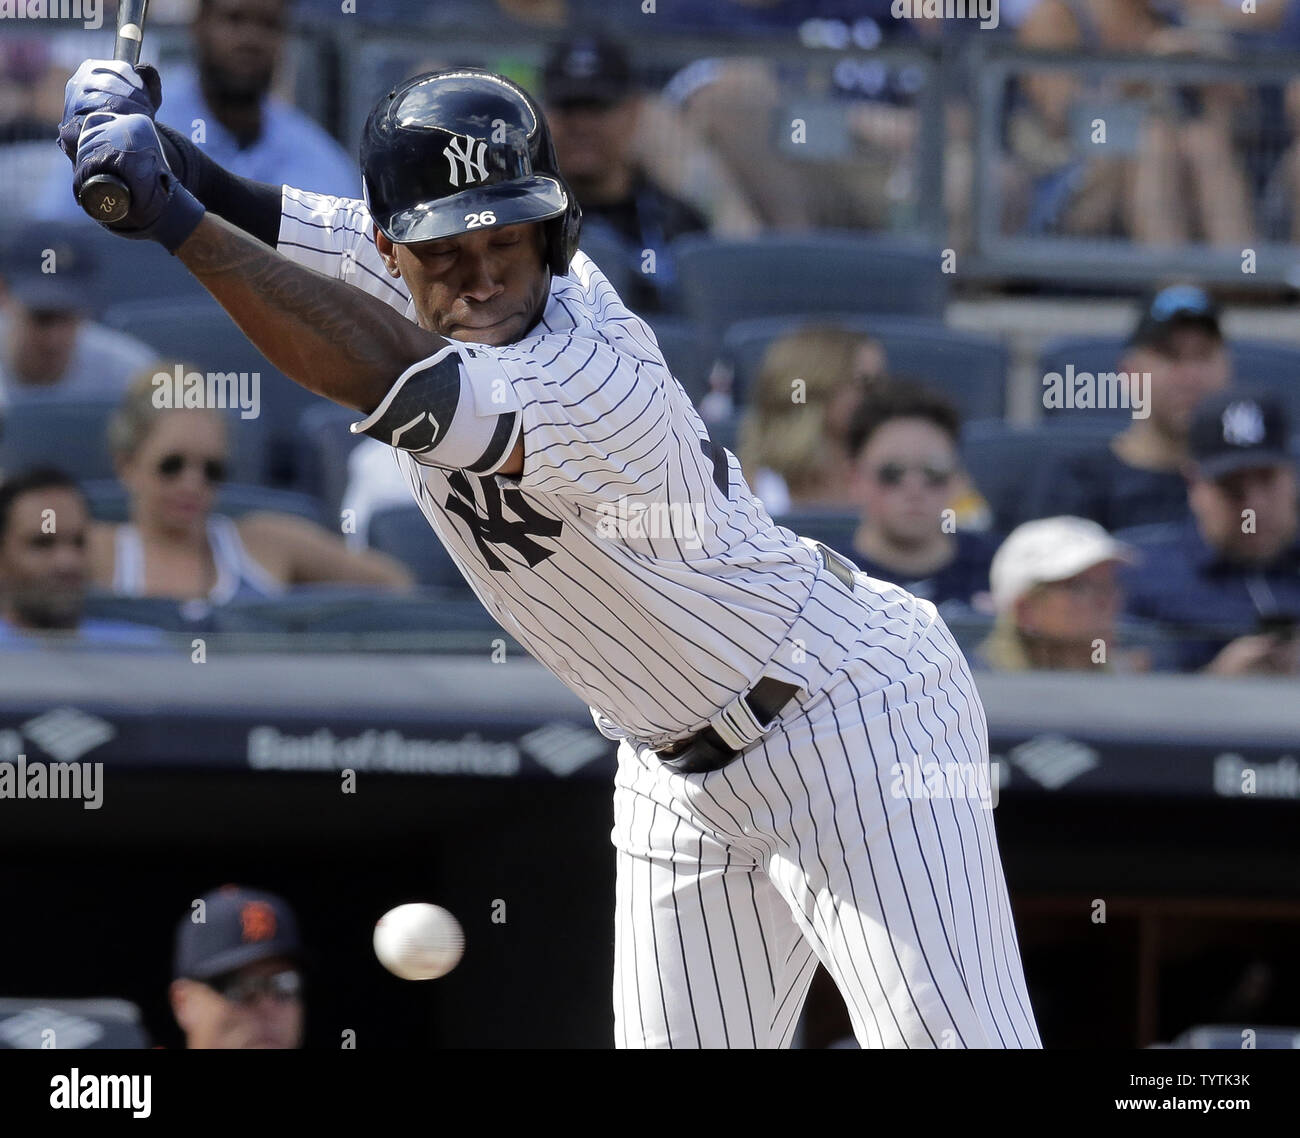 New York Yankees batter Andrew McCutchen is hit by a pitch against the Detroit Tigers in the eighth inning at Yankee Stadium in New York City on September 2, 2018.    Photo by Ray Stubblebine/UPI - Stock Image